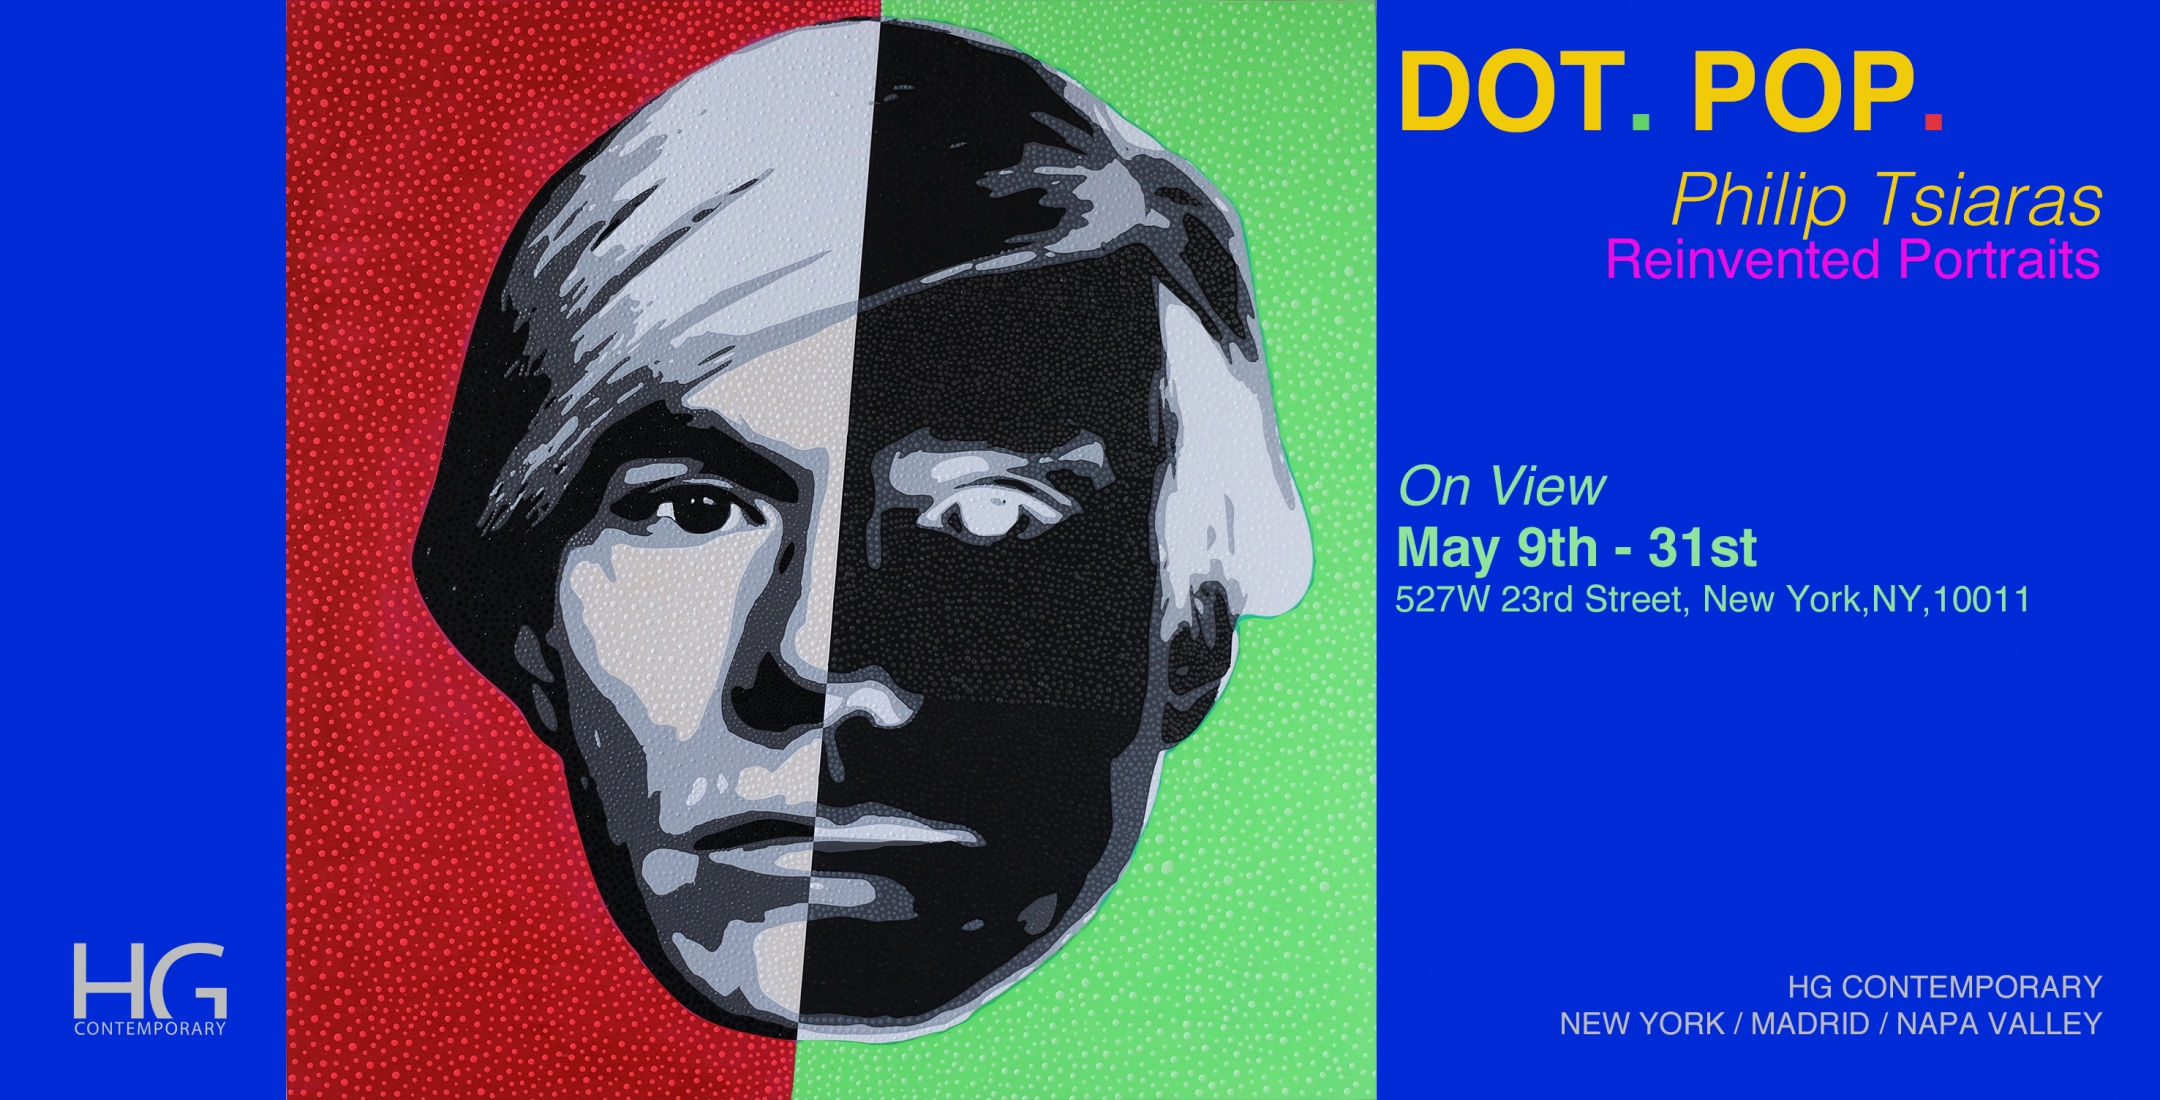 Invite for Dot Pop by Philip Tsiaras at Hg Contemporary Chelsea